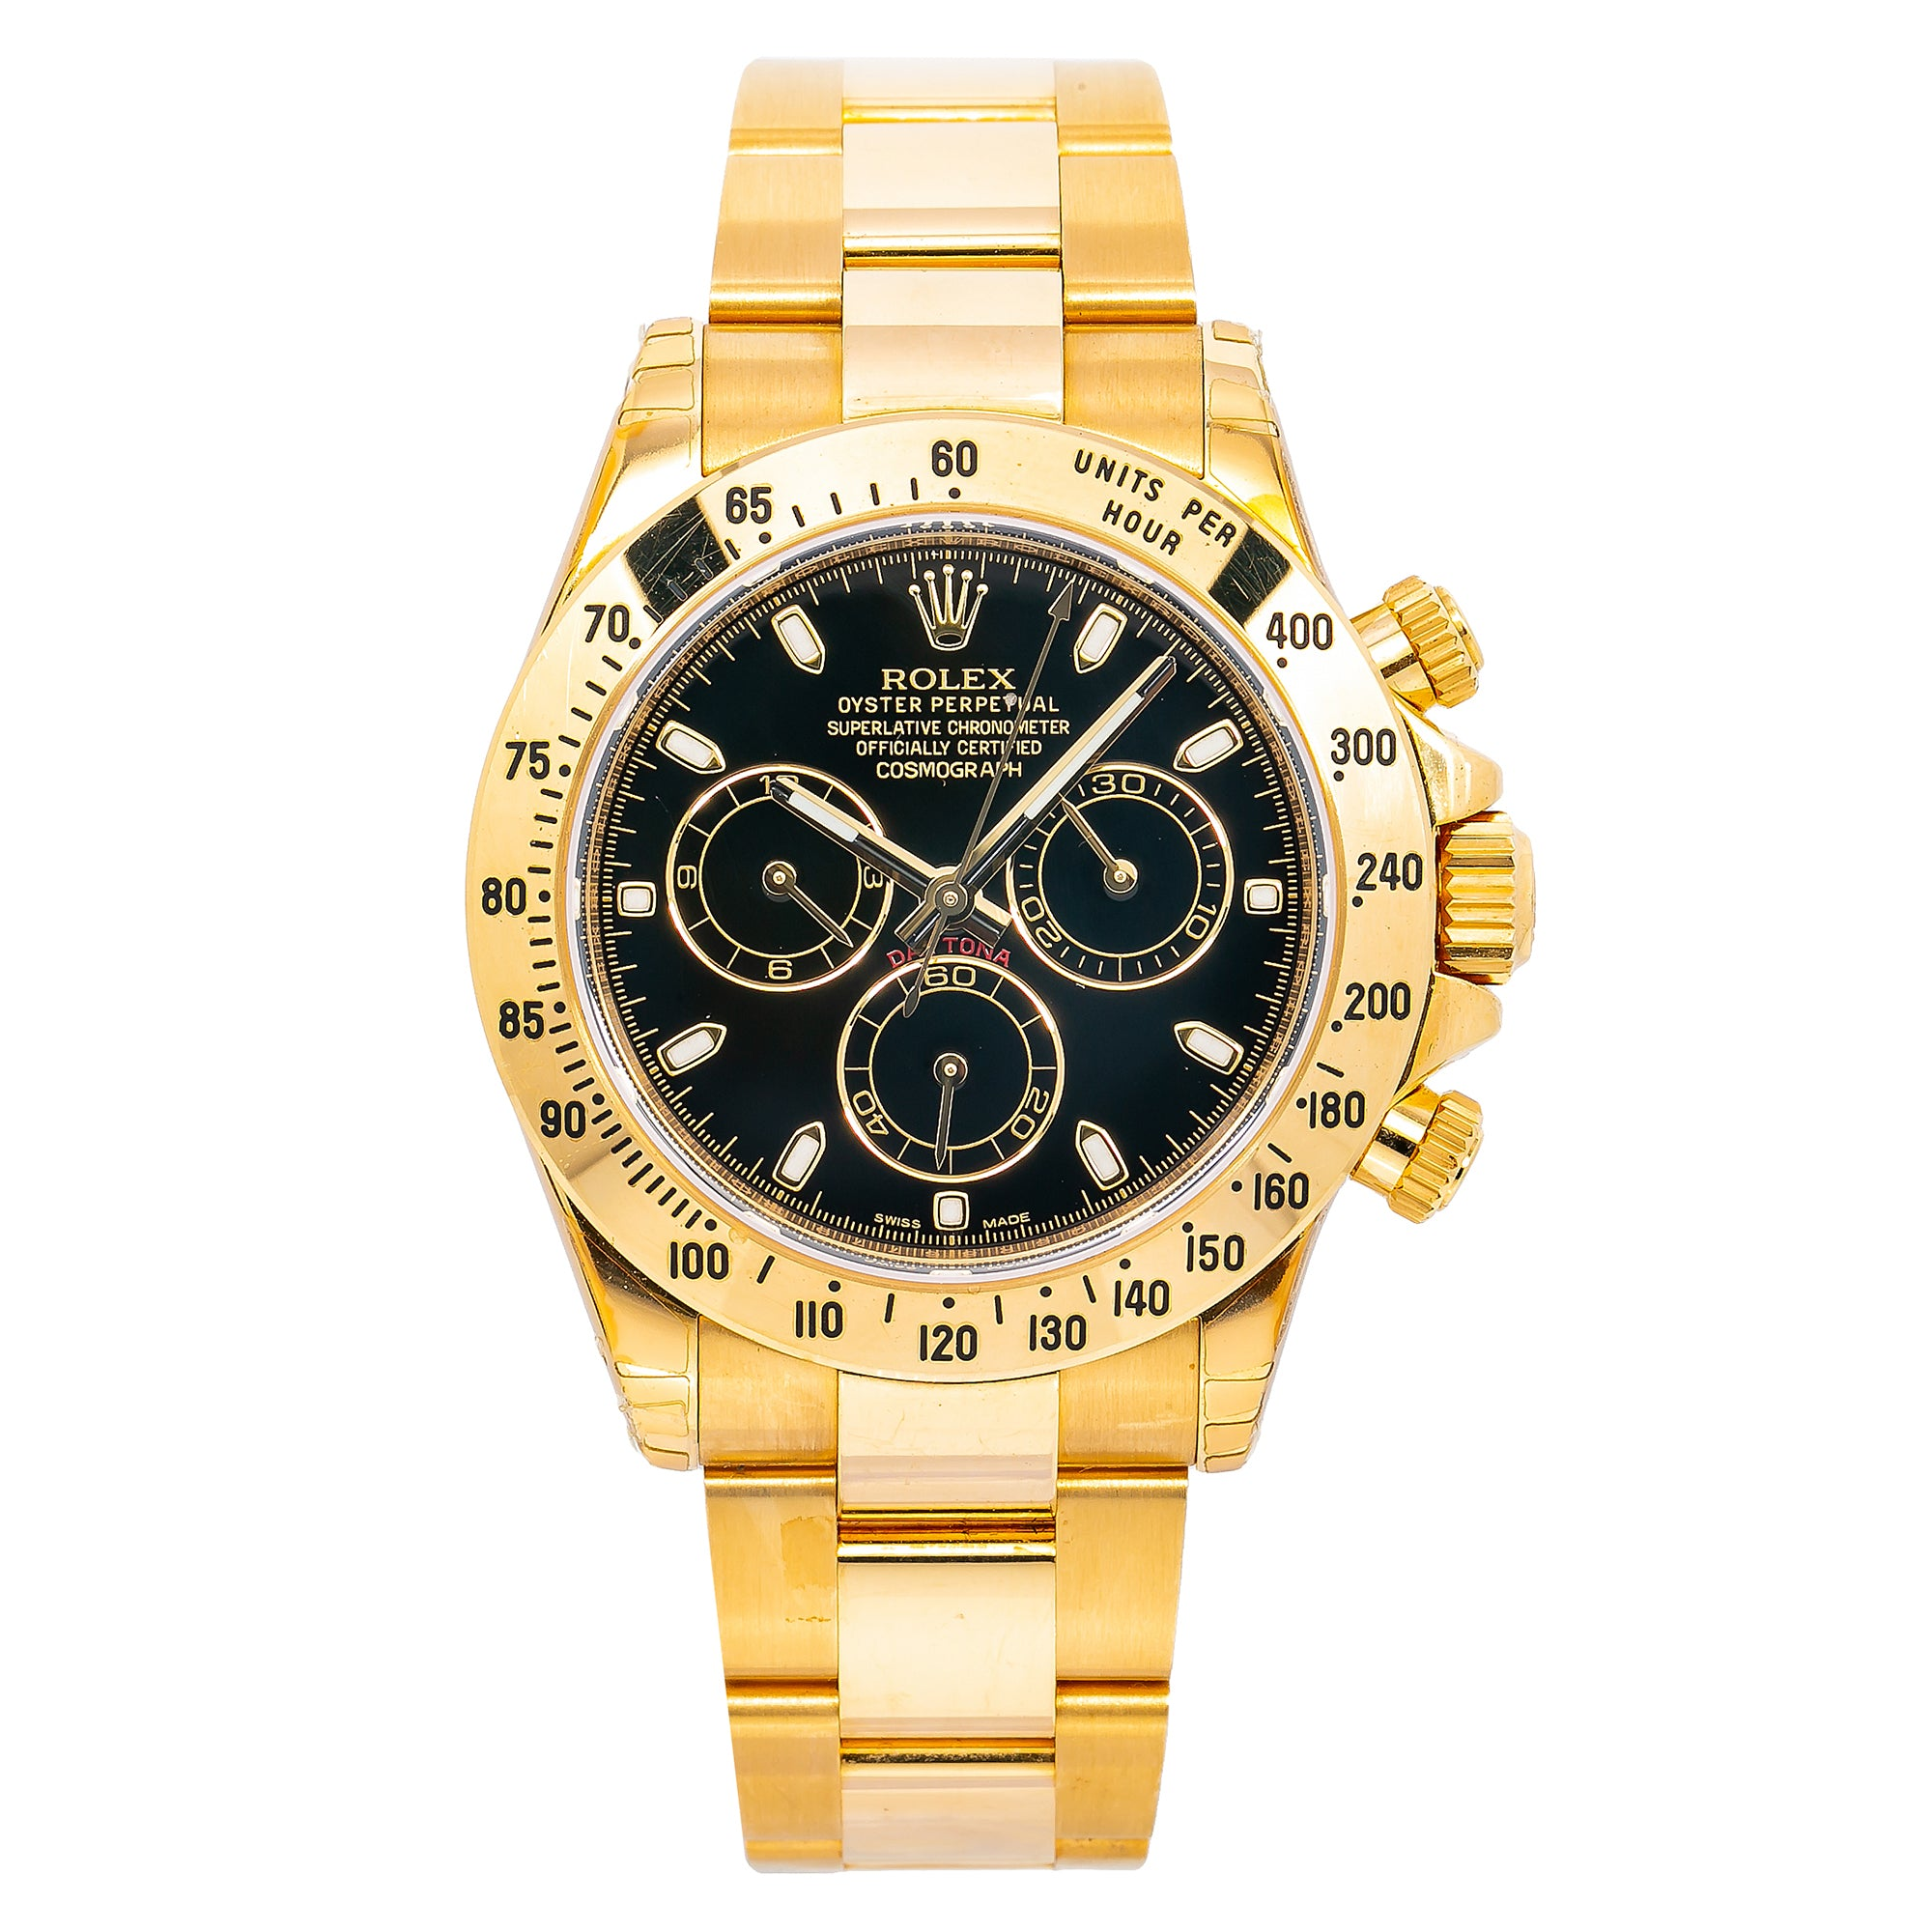 Rolex Daytona 116528 40MM Black Dial With Yellow Gold Bracelet